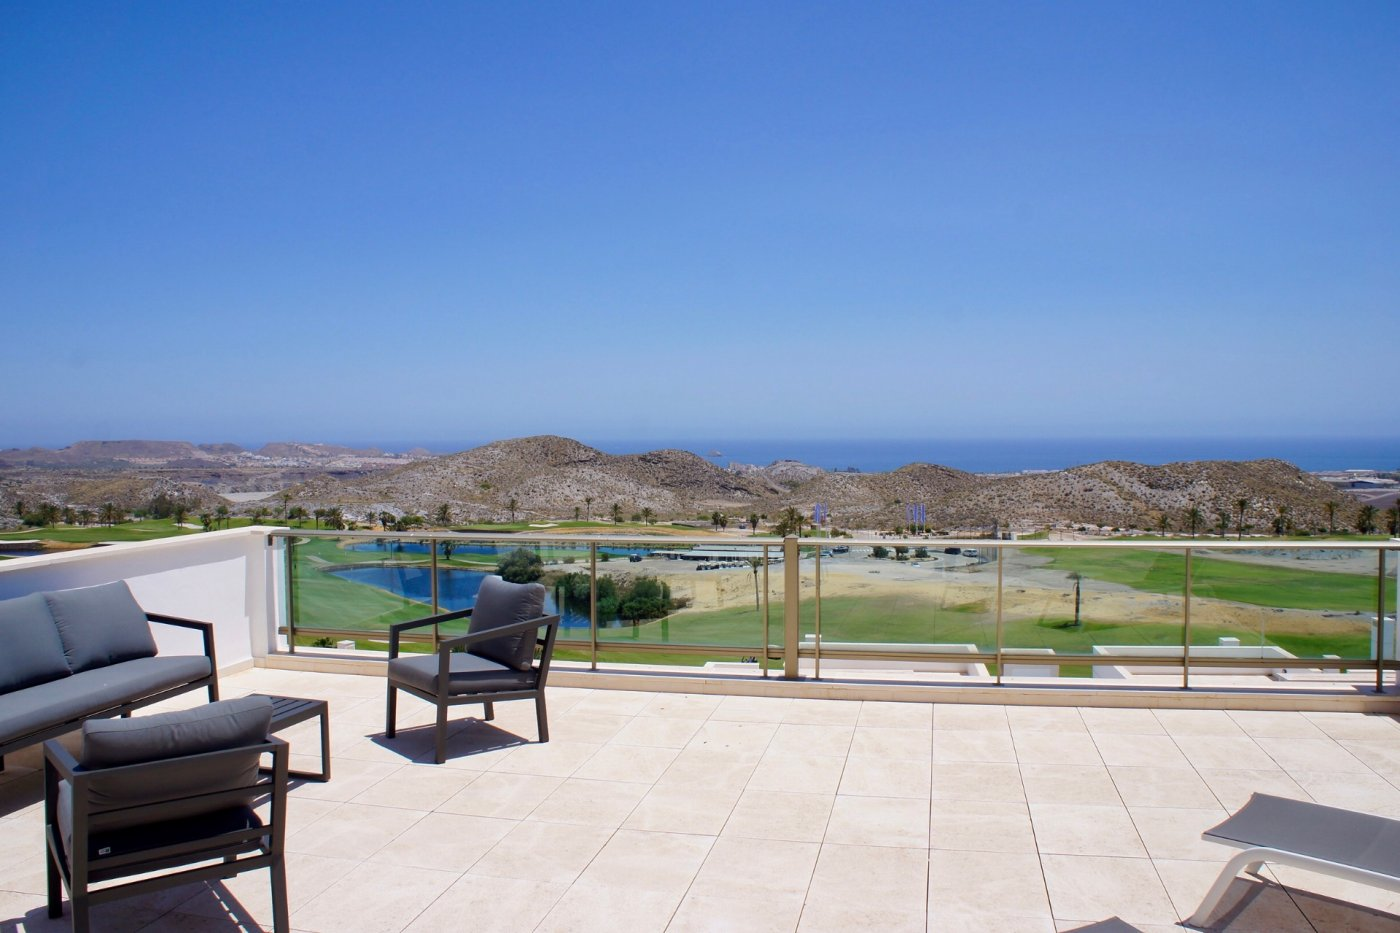 Apartment ref 3108 for sale in Mundo Aguilón Spain - Quality Homes Costa Cálida